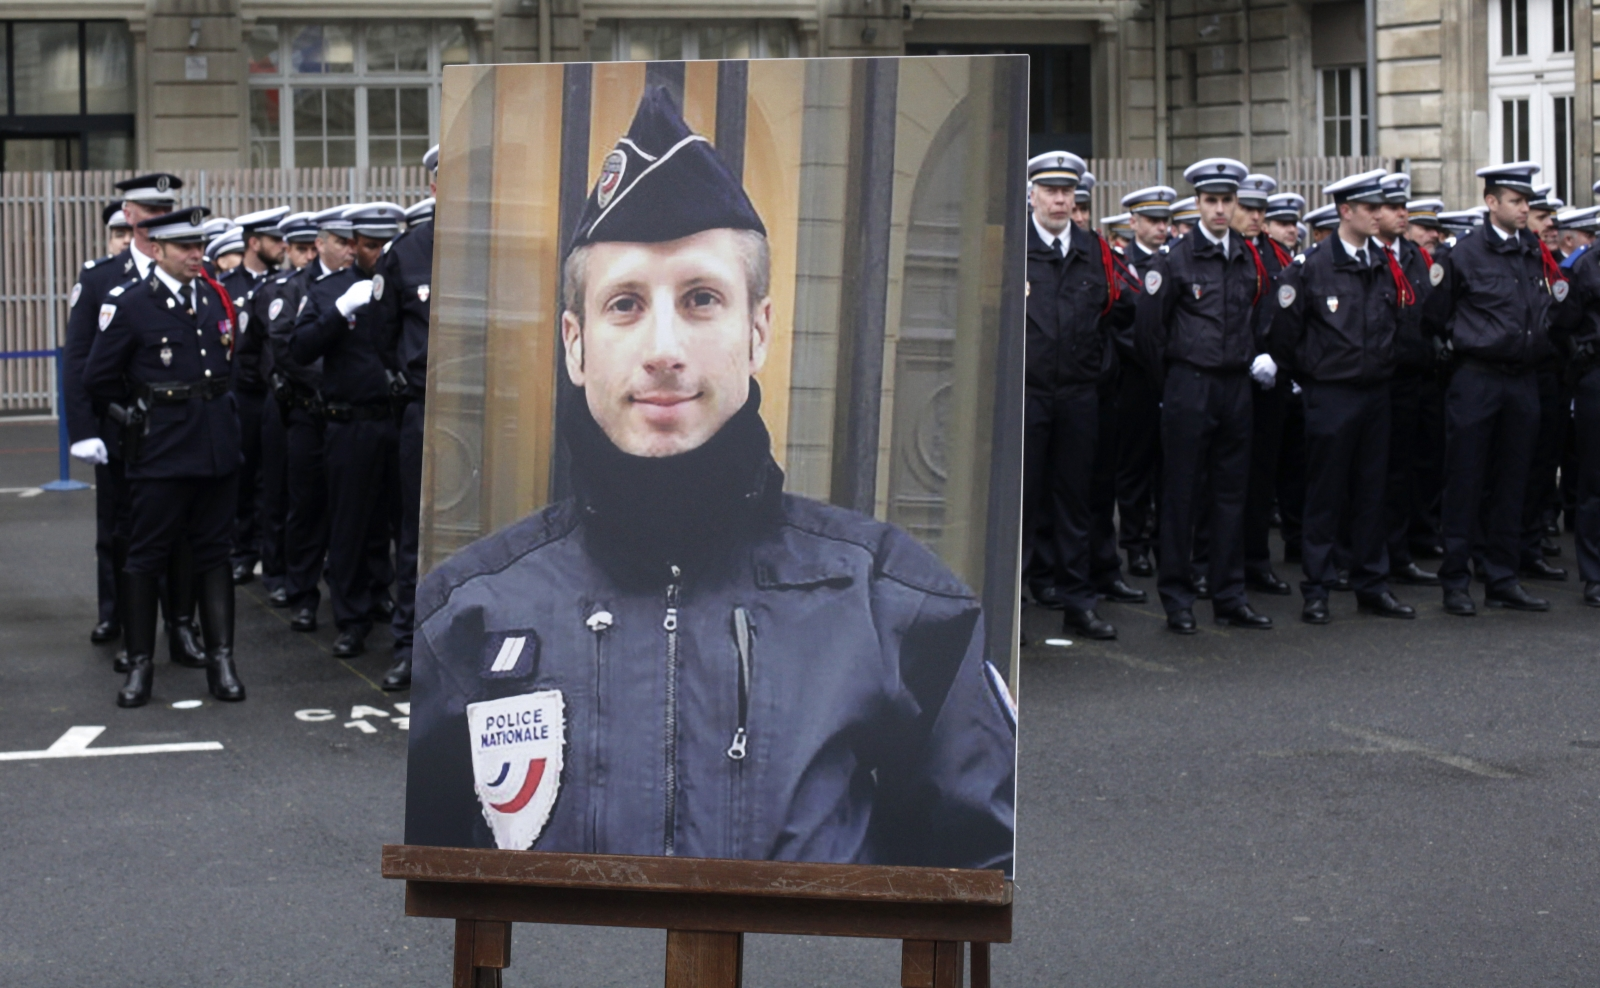 Boyfriend of policeman murdered in Paris terror attack marries him posthumously